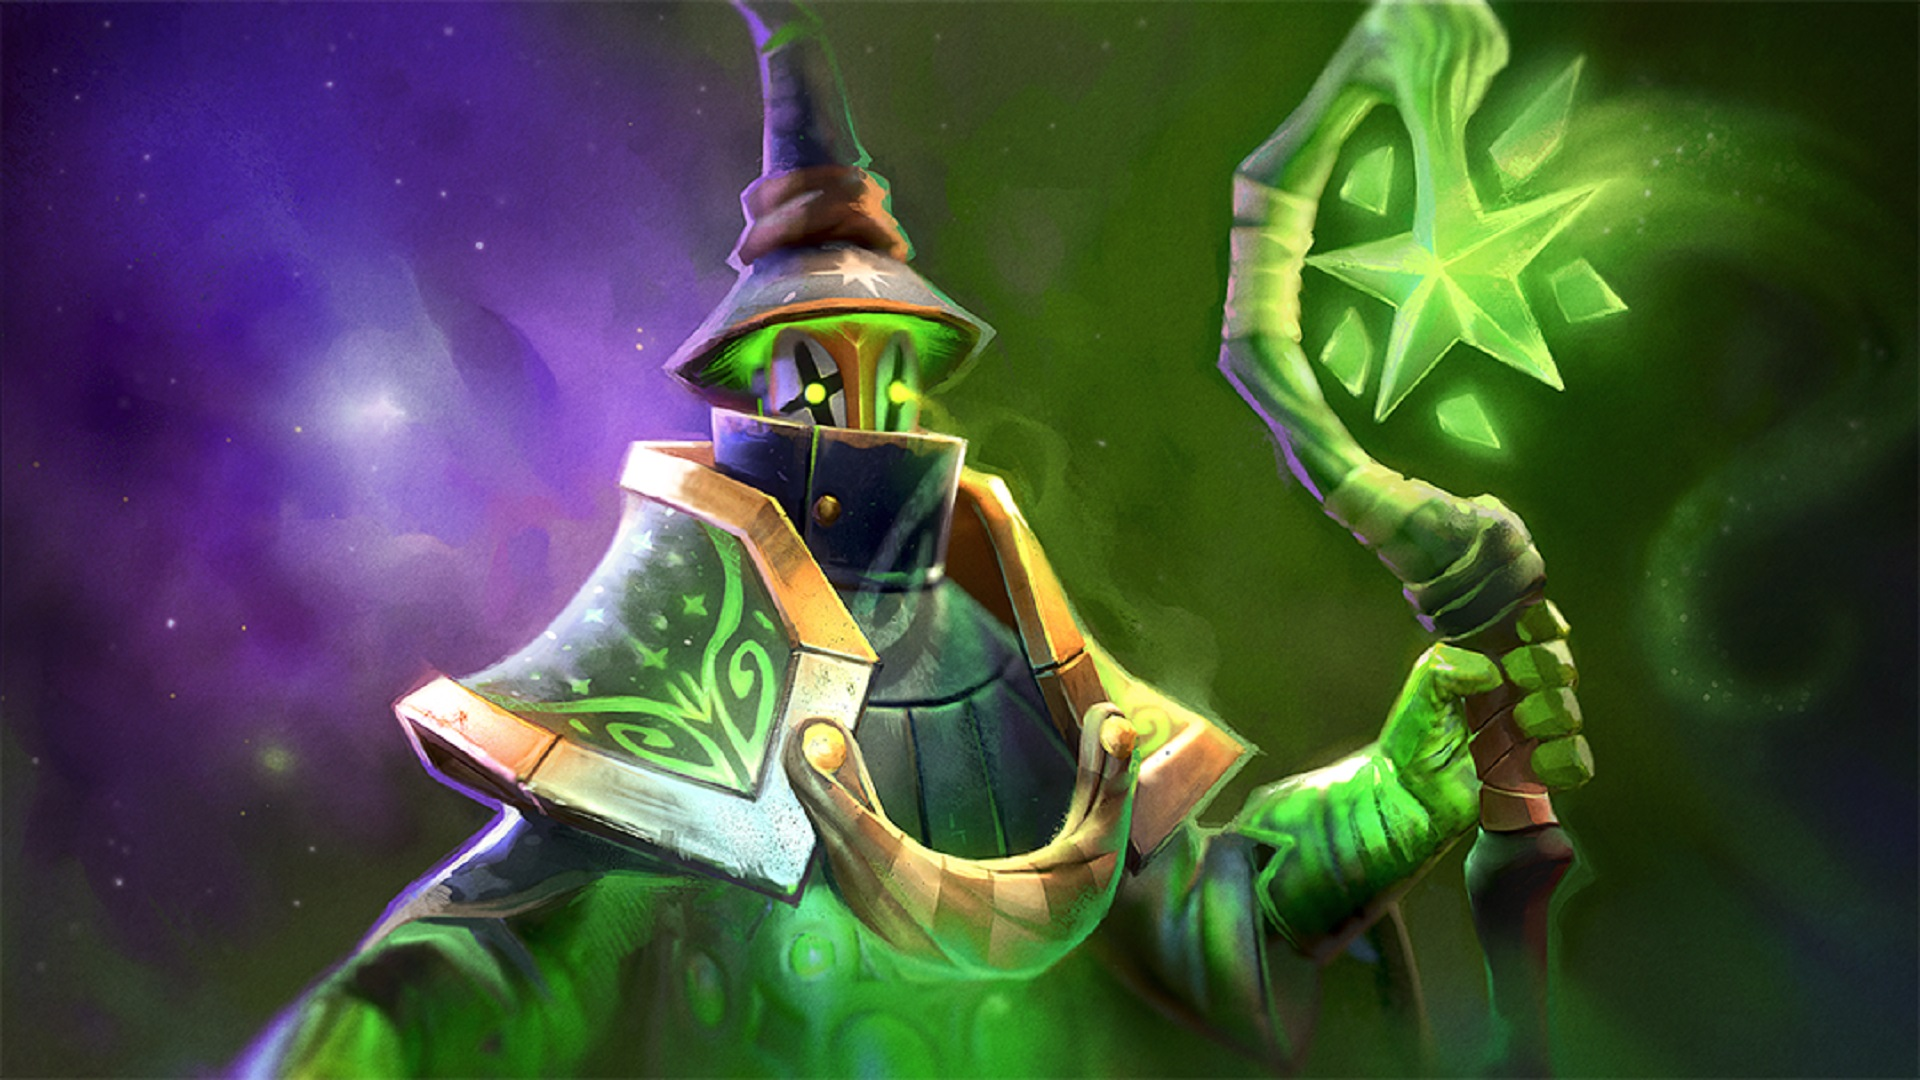 Rubick cool wallpapers for windows